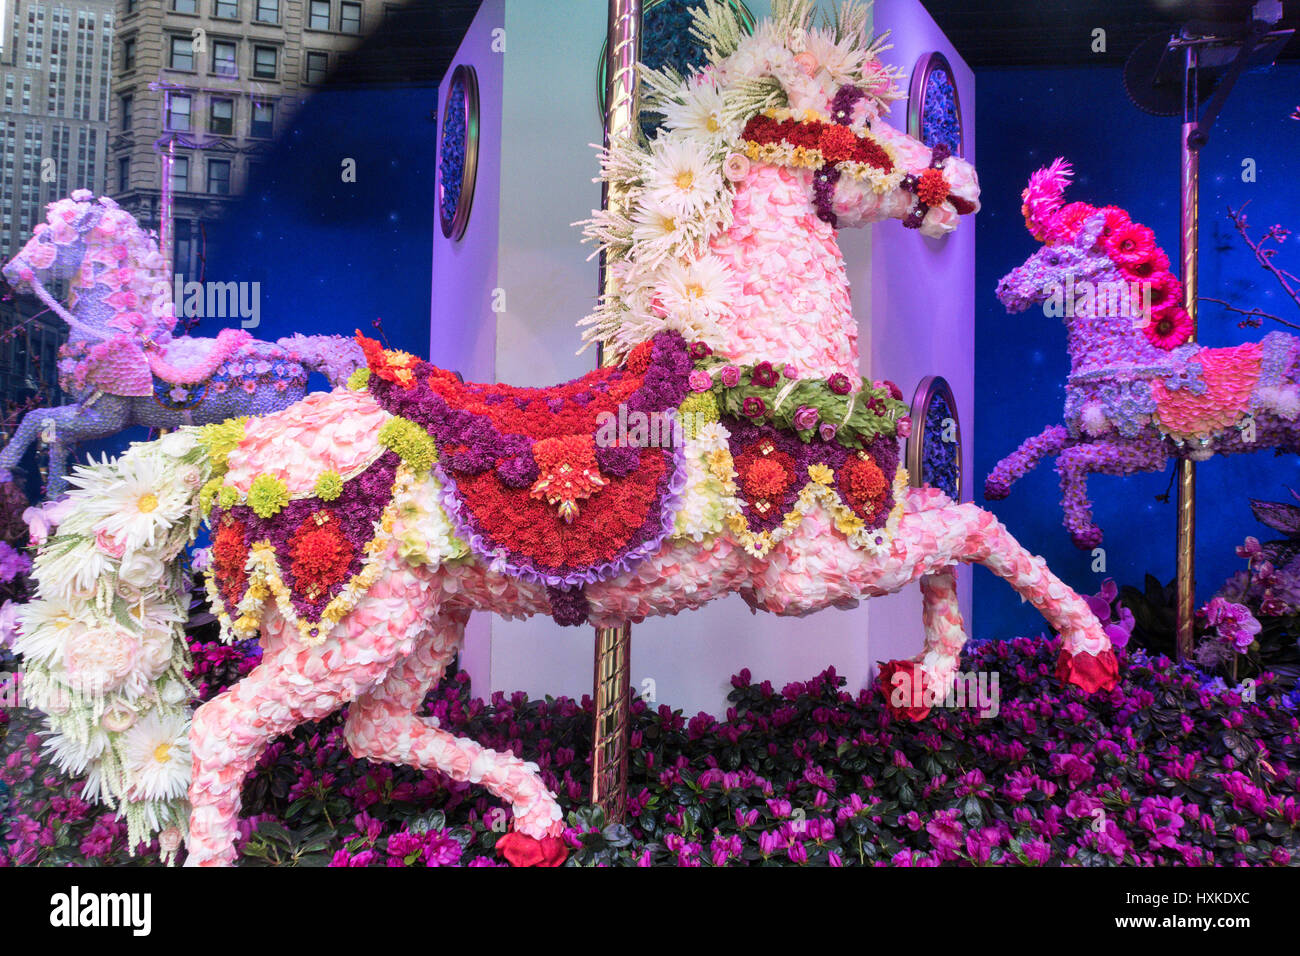 Macy s Carnival Themed Flower Show at Herald Square NYC USA Stock